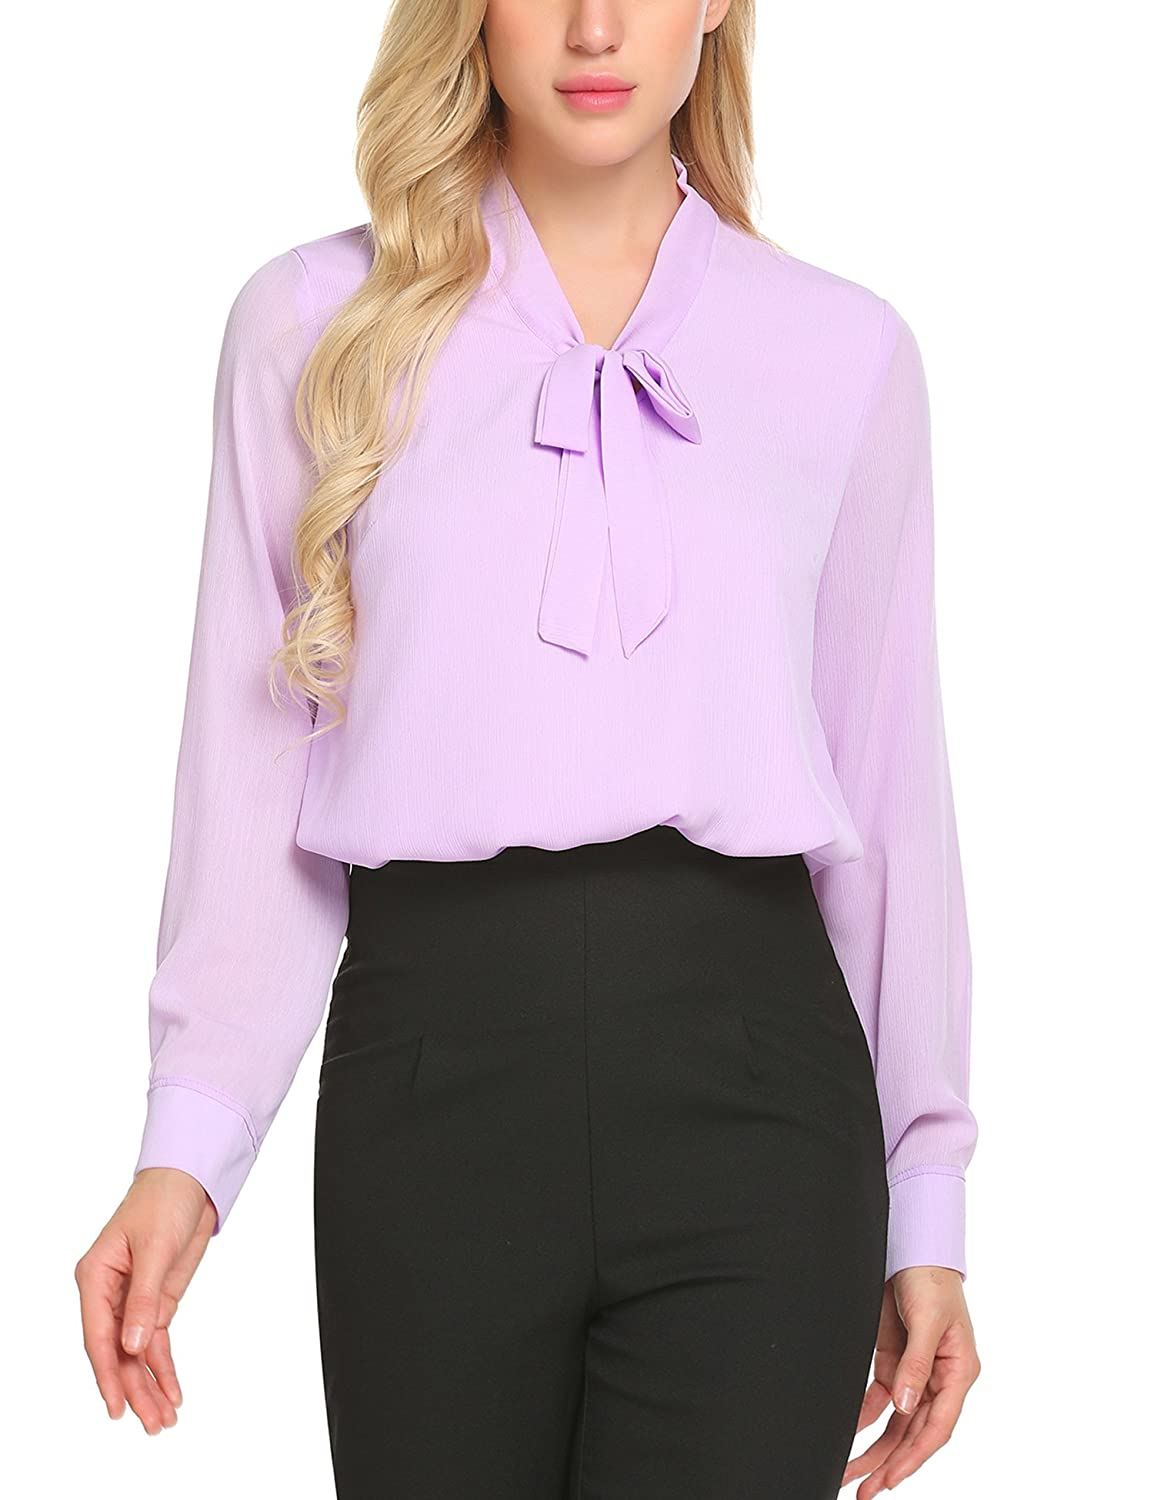 Agent Peggy Carter Costume, Dress, Hats ACEVOG Womens Bow Tie Neck Long/Short Sleeve Casual Office Work Chiffon Blouse Shirts Tops $29.99 AT vintagedancer.com